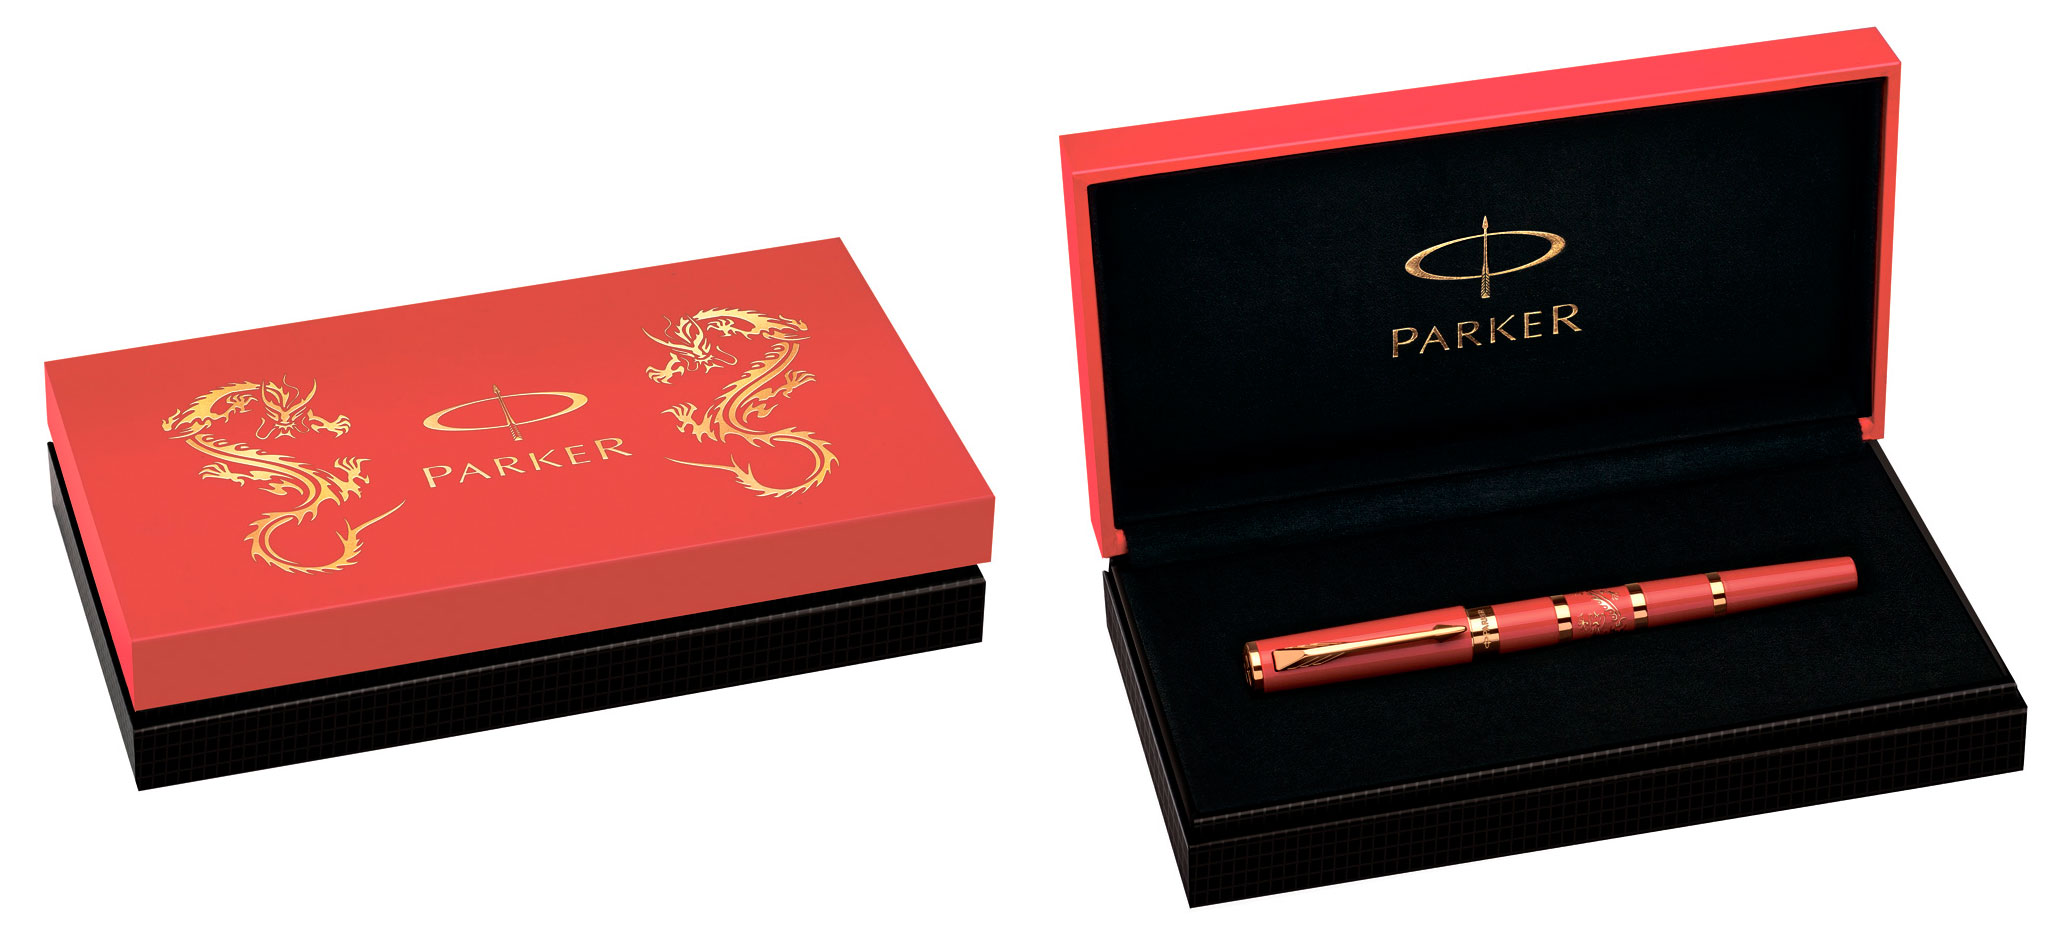 Ручка подар. Parker PRK Ingnty L Red Dragon GT M BLK GB LE